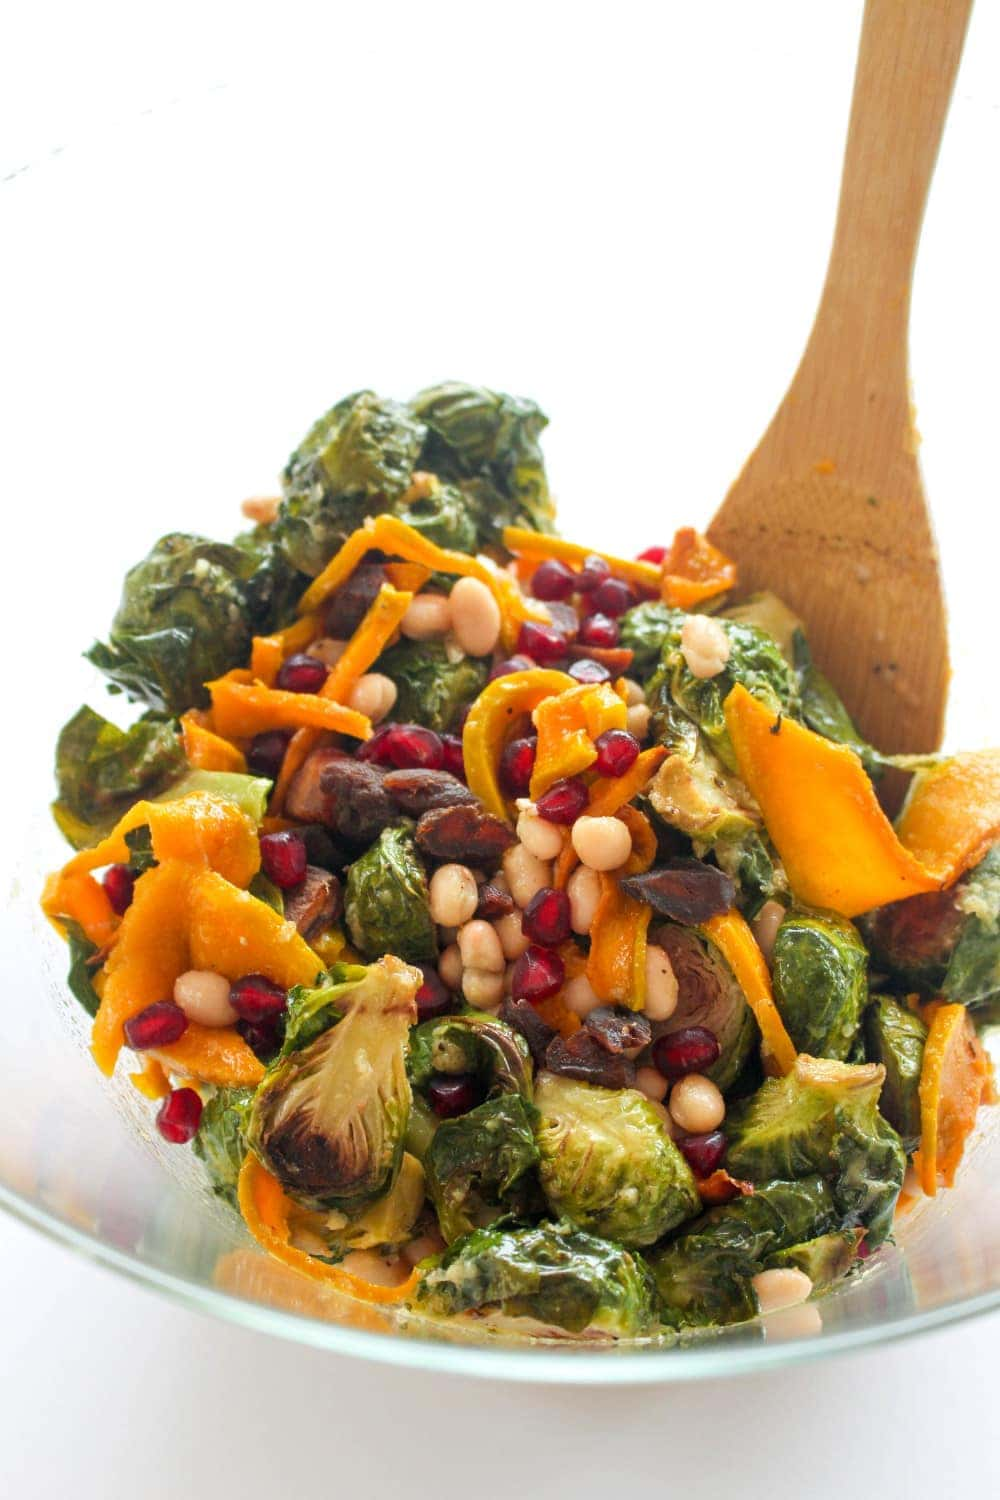 This nutrient dense salad is packed with caramelized squash, brussel sprouts, beans, and dried apricots! #glutenfree #vegan